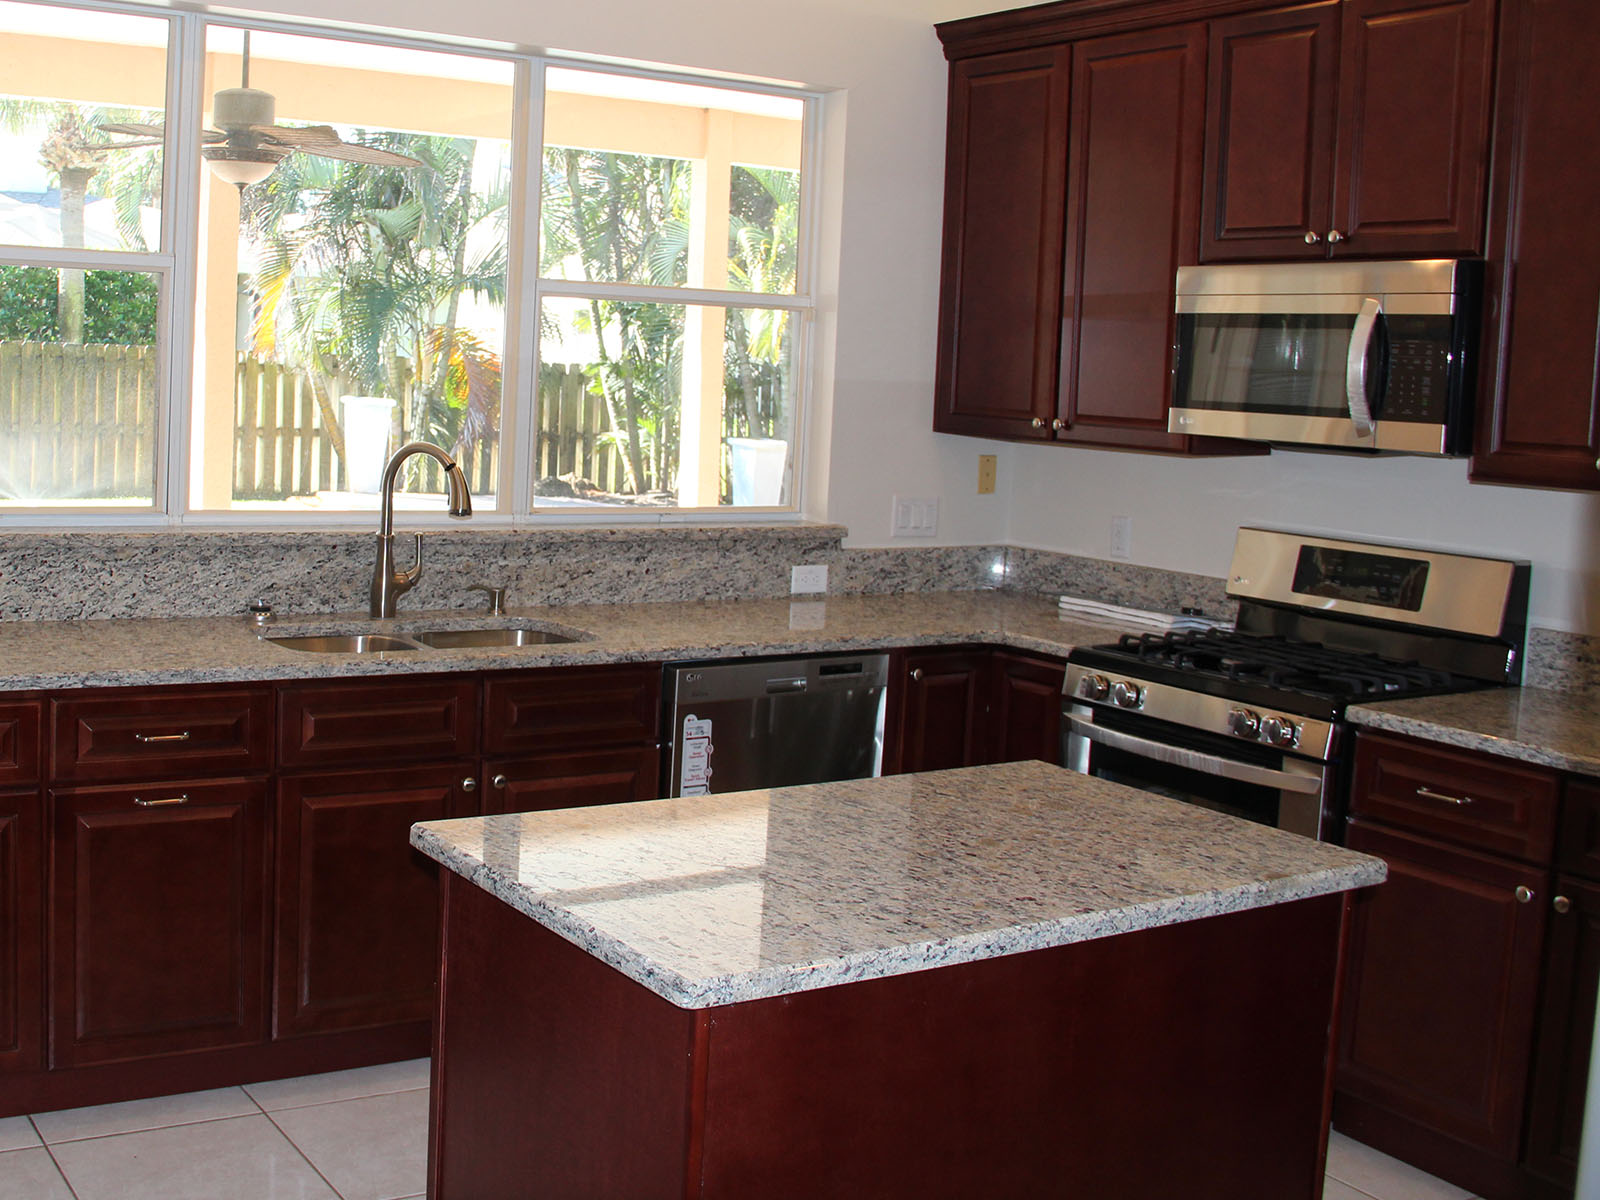 cabinets and baths sales and installation in melbourne florida